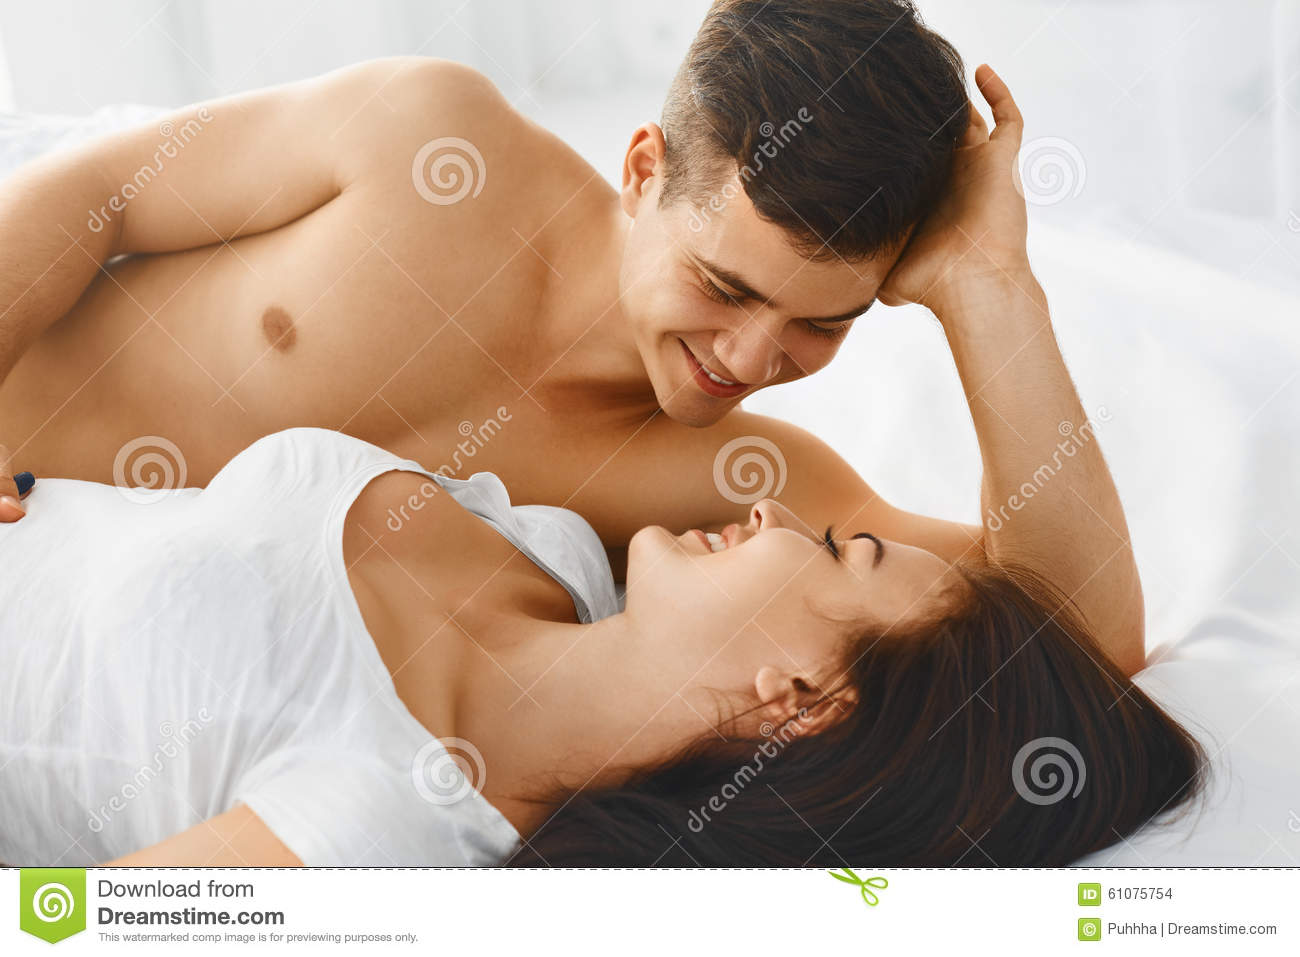 Royalty Free Stock Photo. Portrait Of Couple Loving Each Other  Stock Photo   Image  61075754